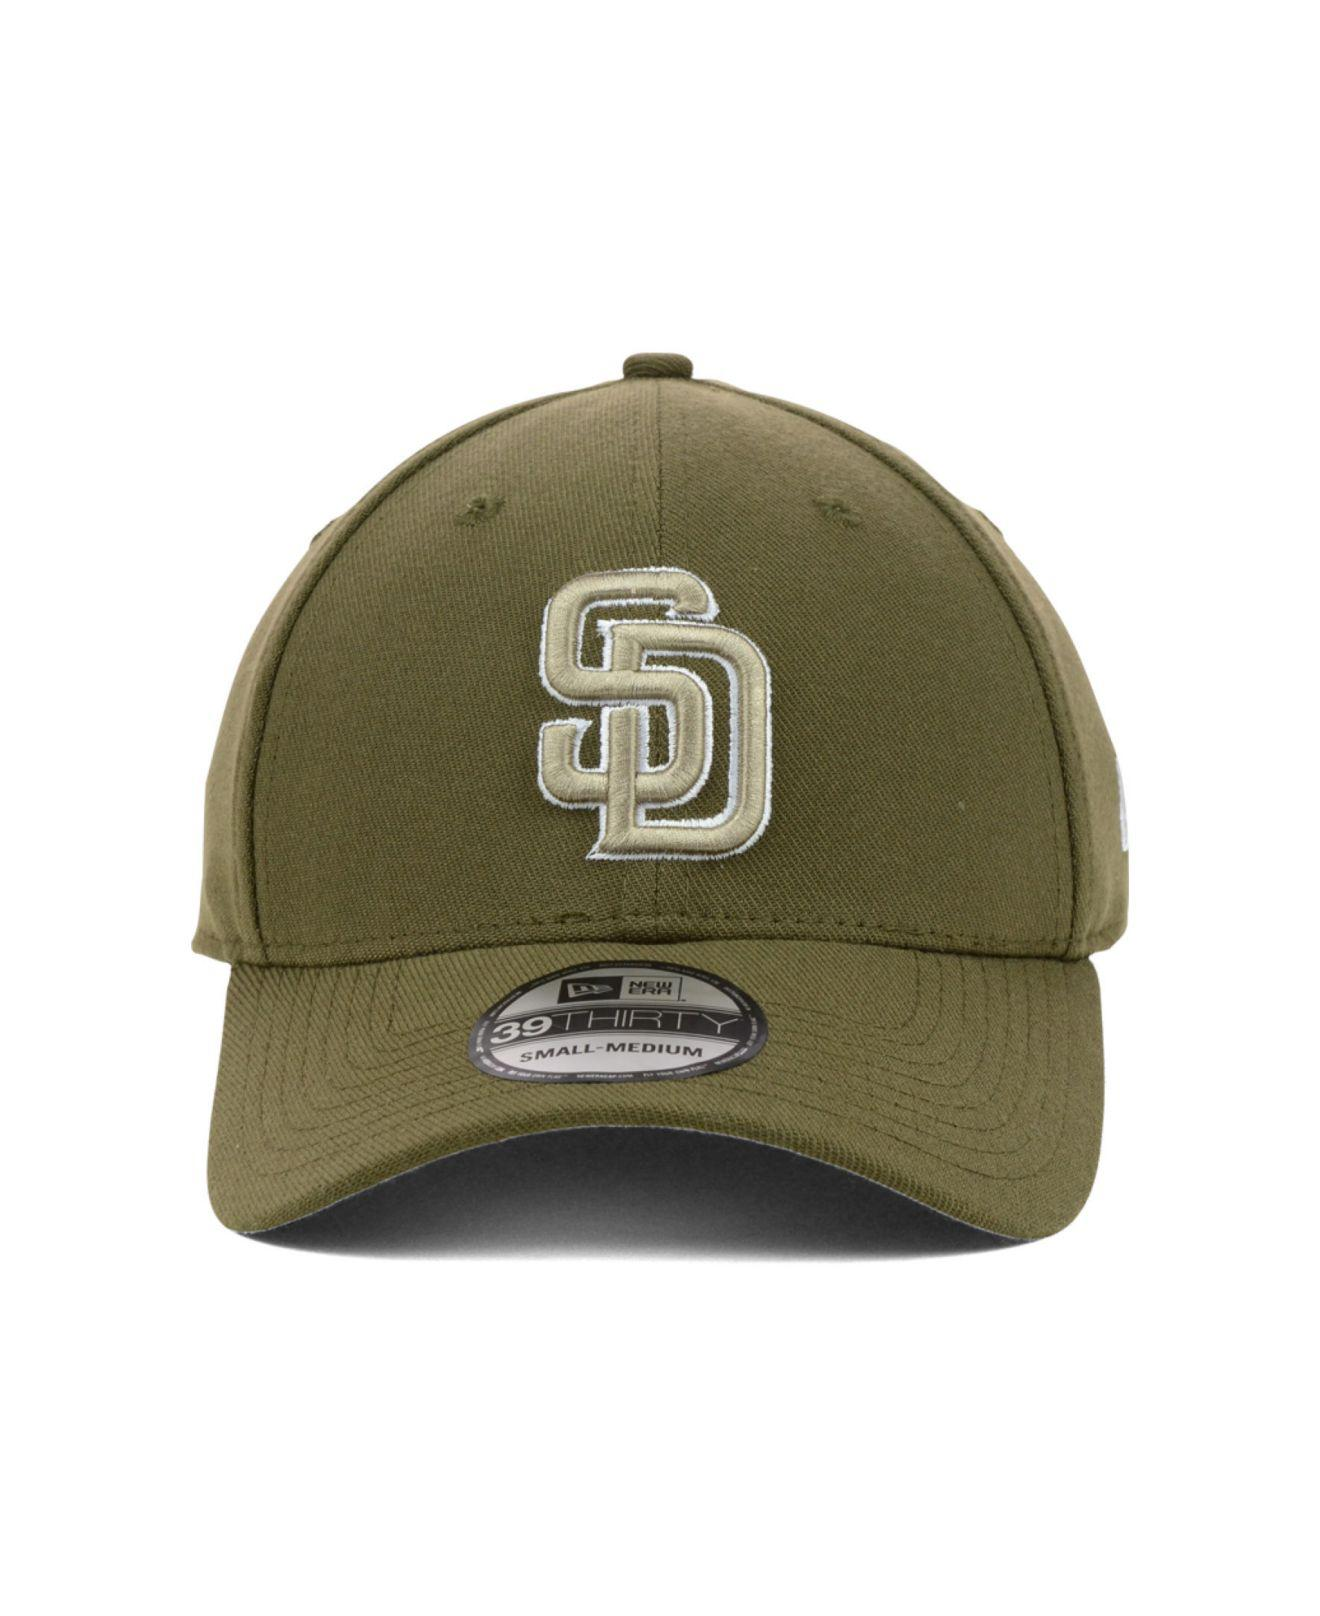 162871bad ... snapback hat grey white 860ba d7302; canada lyst ktz san diego padres  mlb team classic 39thirty cap in brown for men 11bda